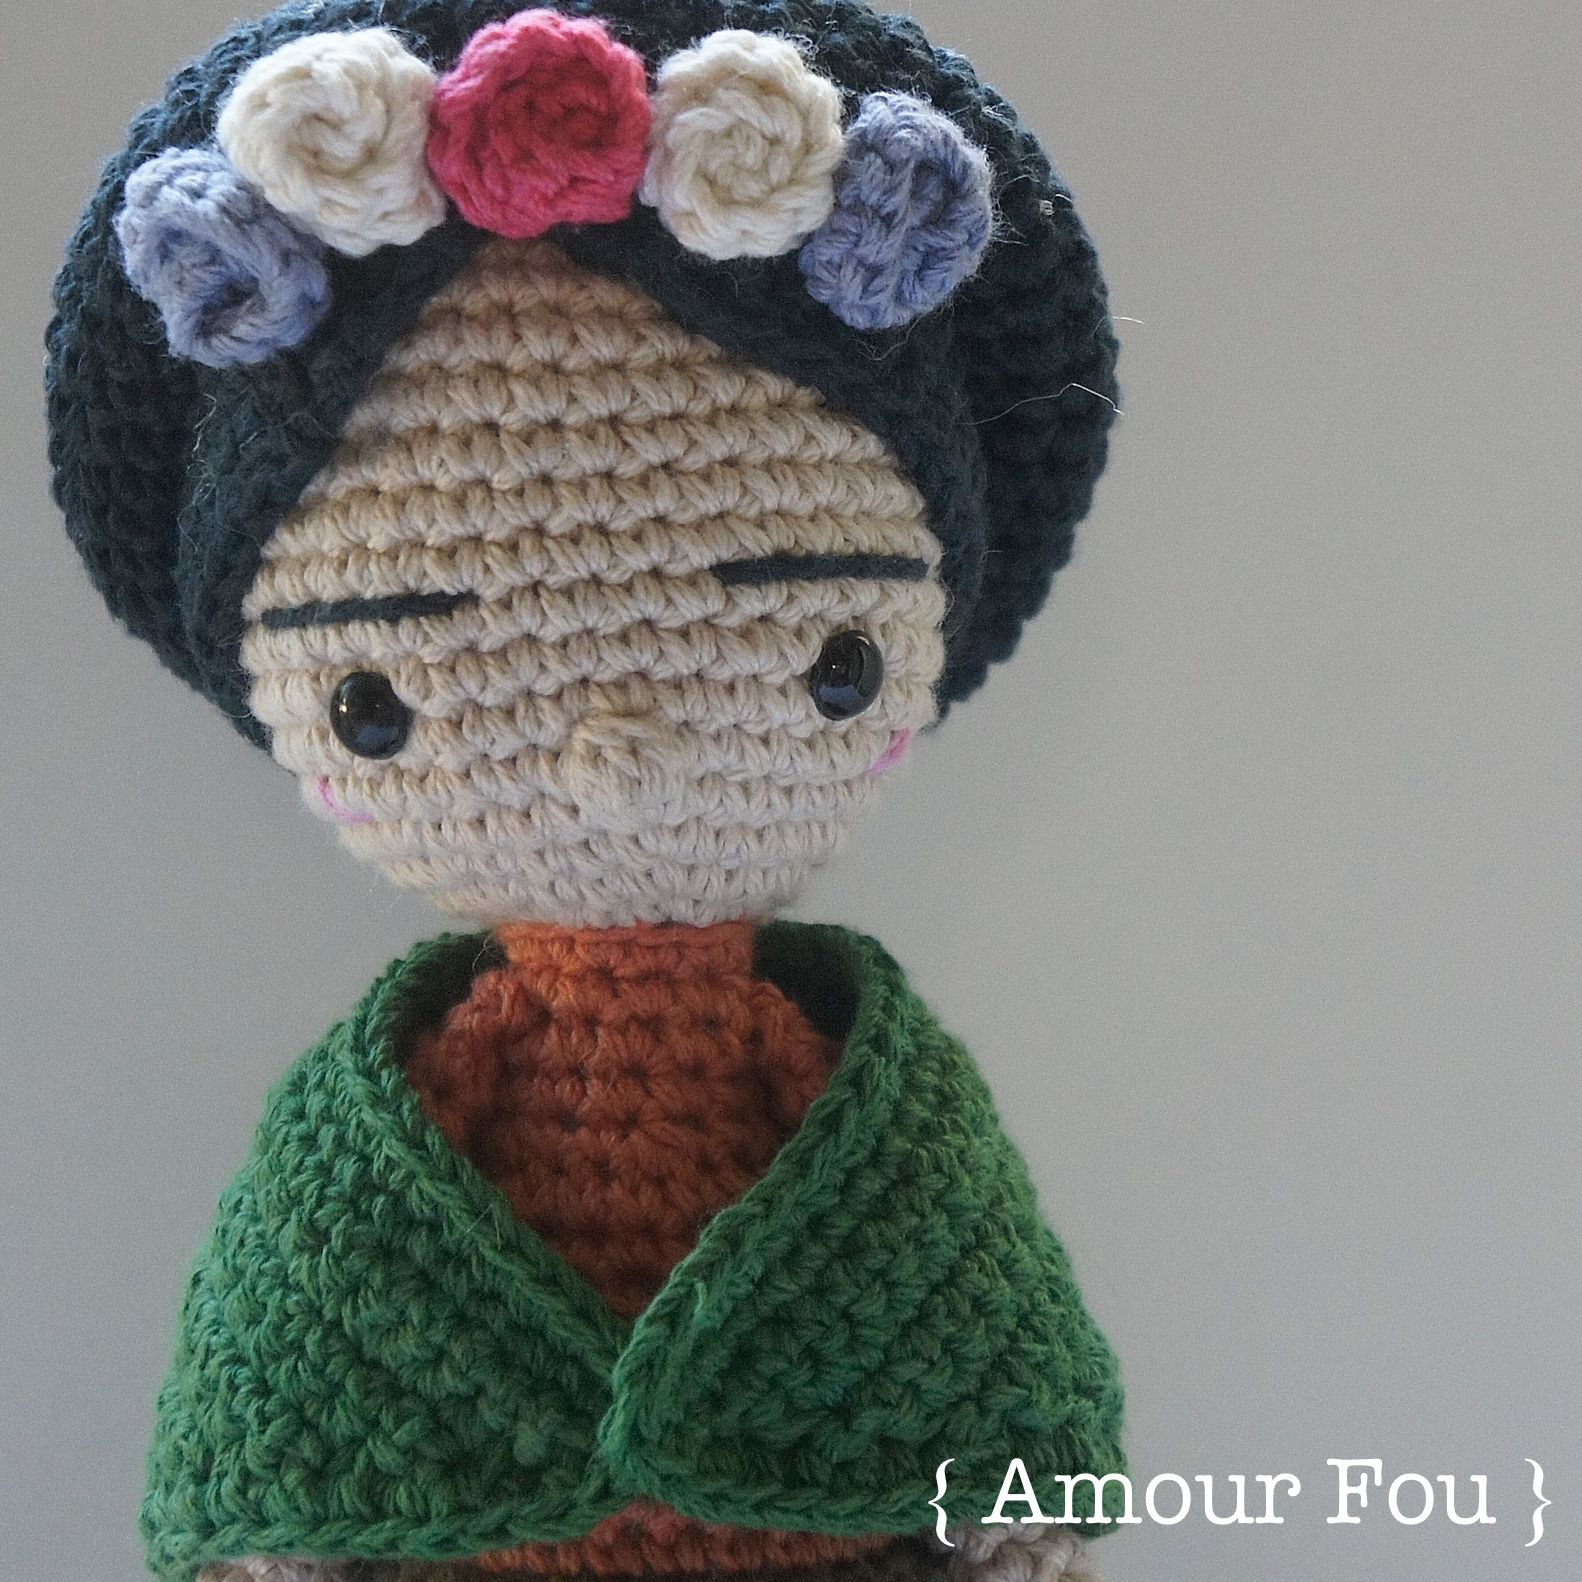 Frida crochet pattern by amour fou amour fou pinterest frida crochet pattern by amour fou bankloansurffo Images